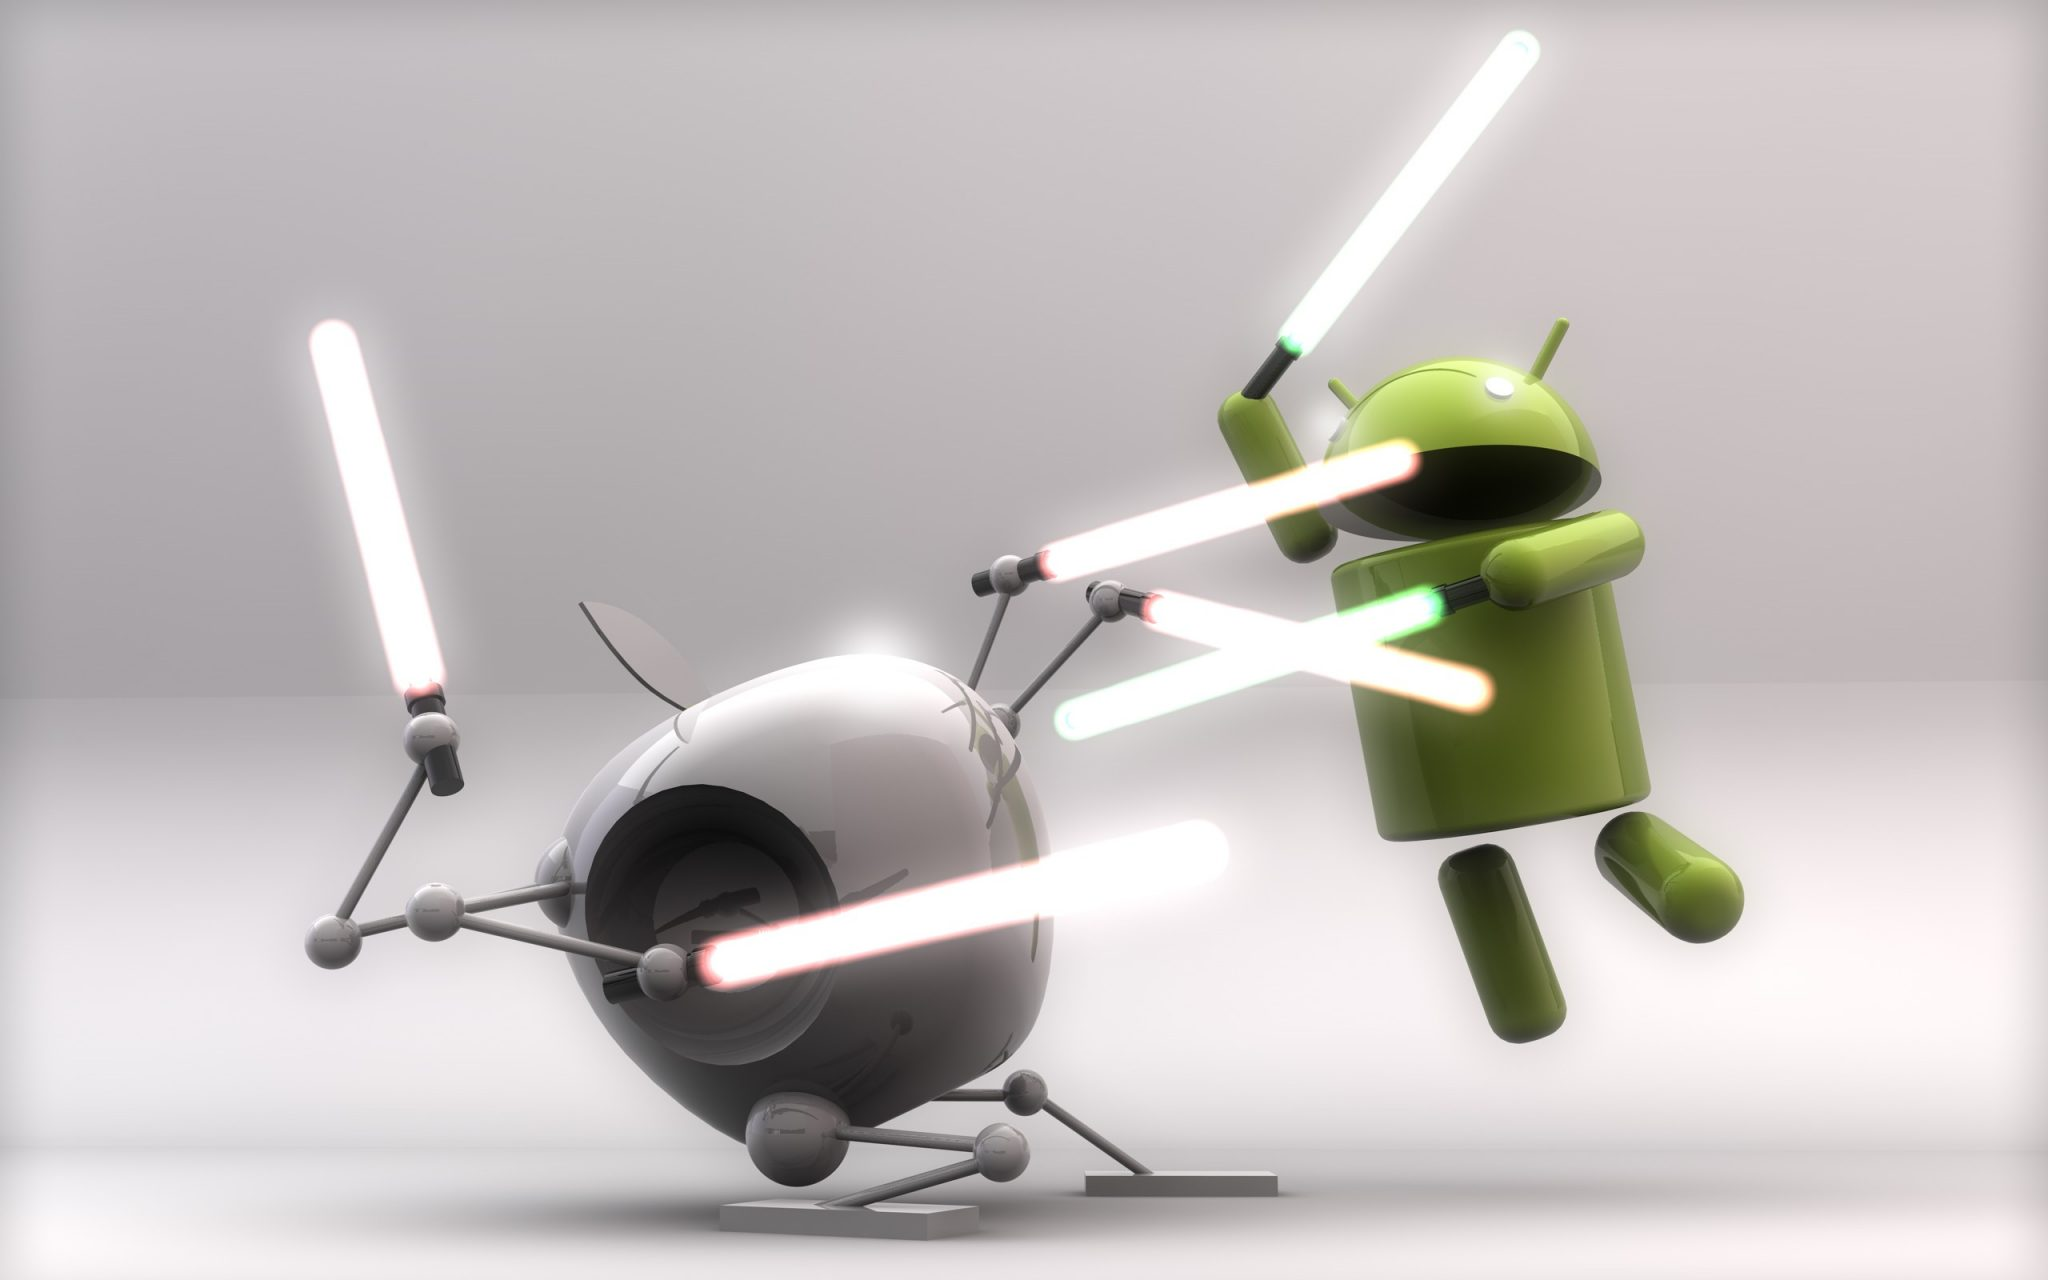 Android Currently Dominates Smartphone Market, Will iPhone 5 Release Change It?